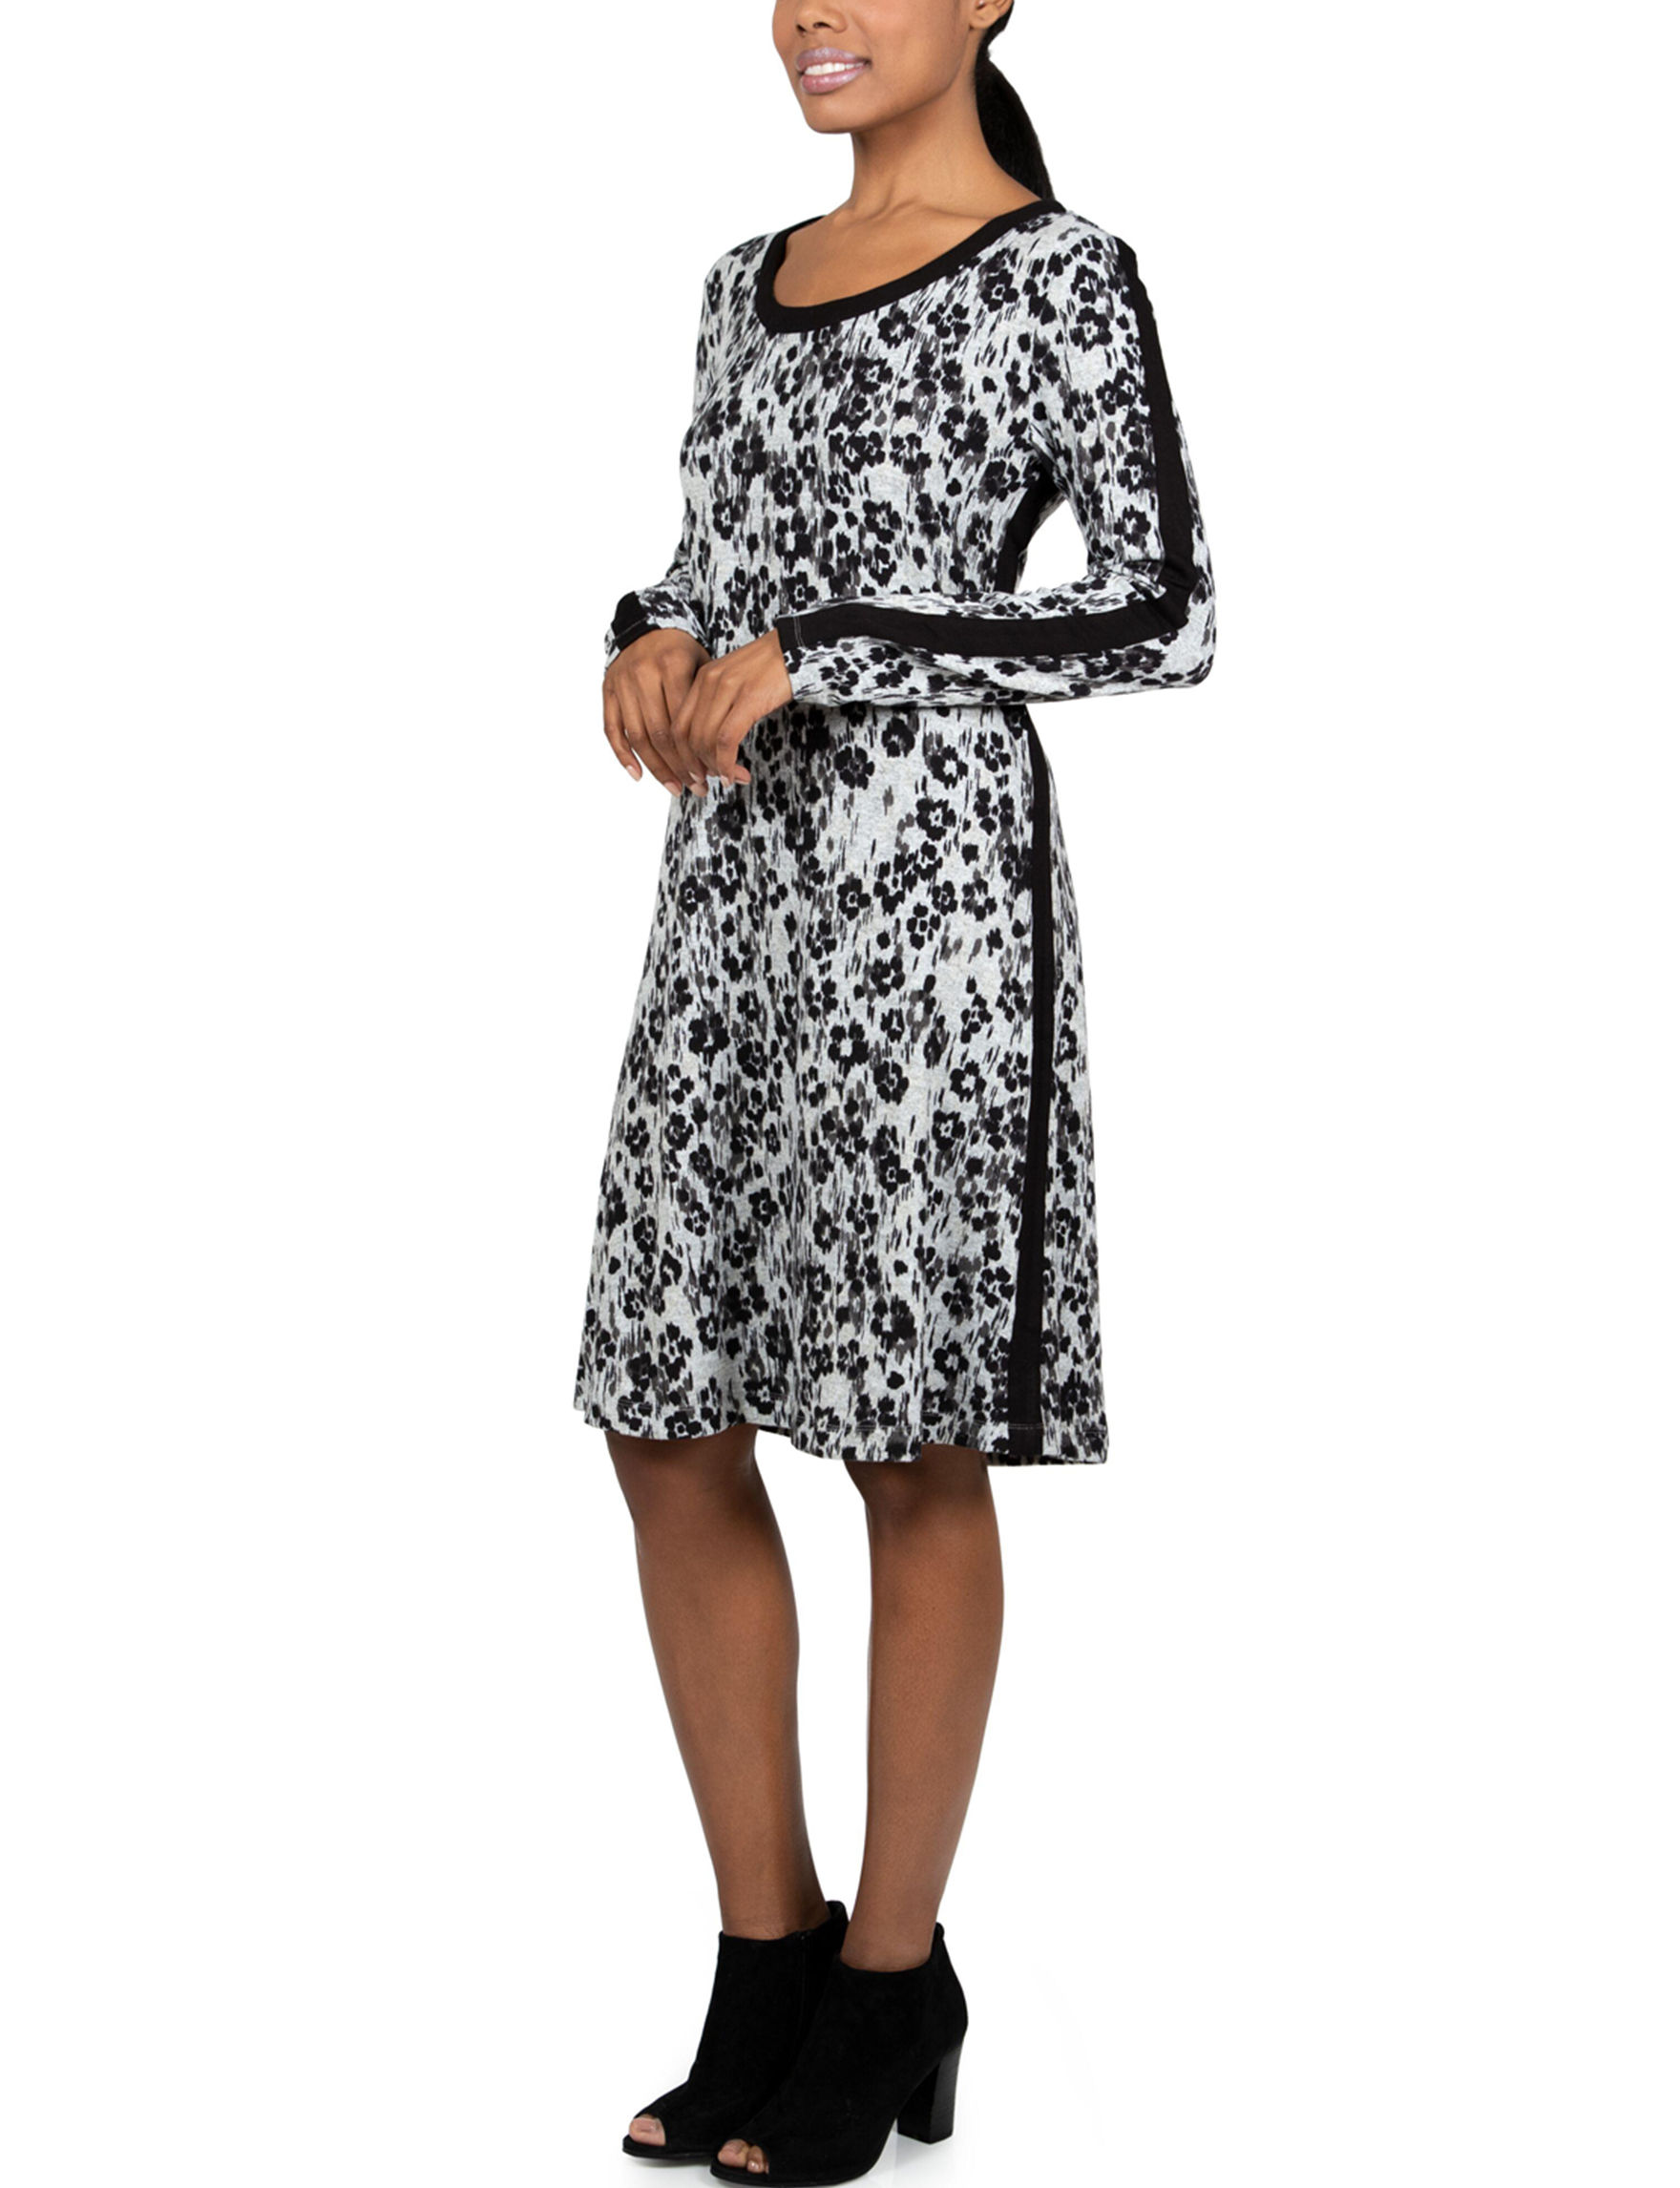 Skyes The Limit Grey / Black Everyday & Casual A-line Dresses